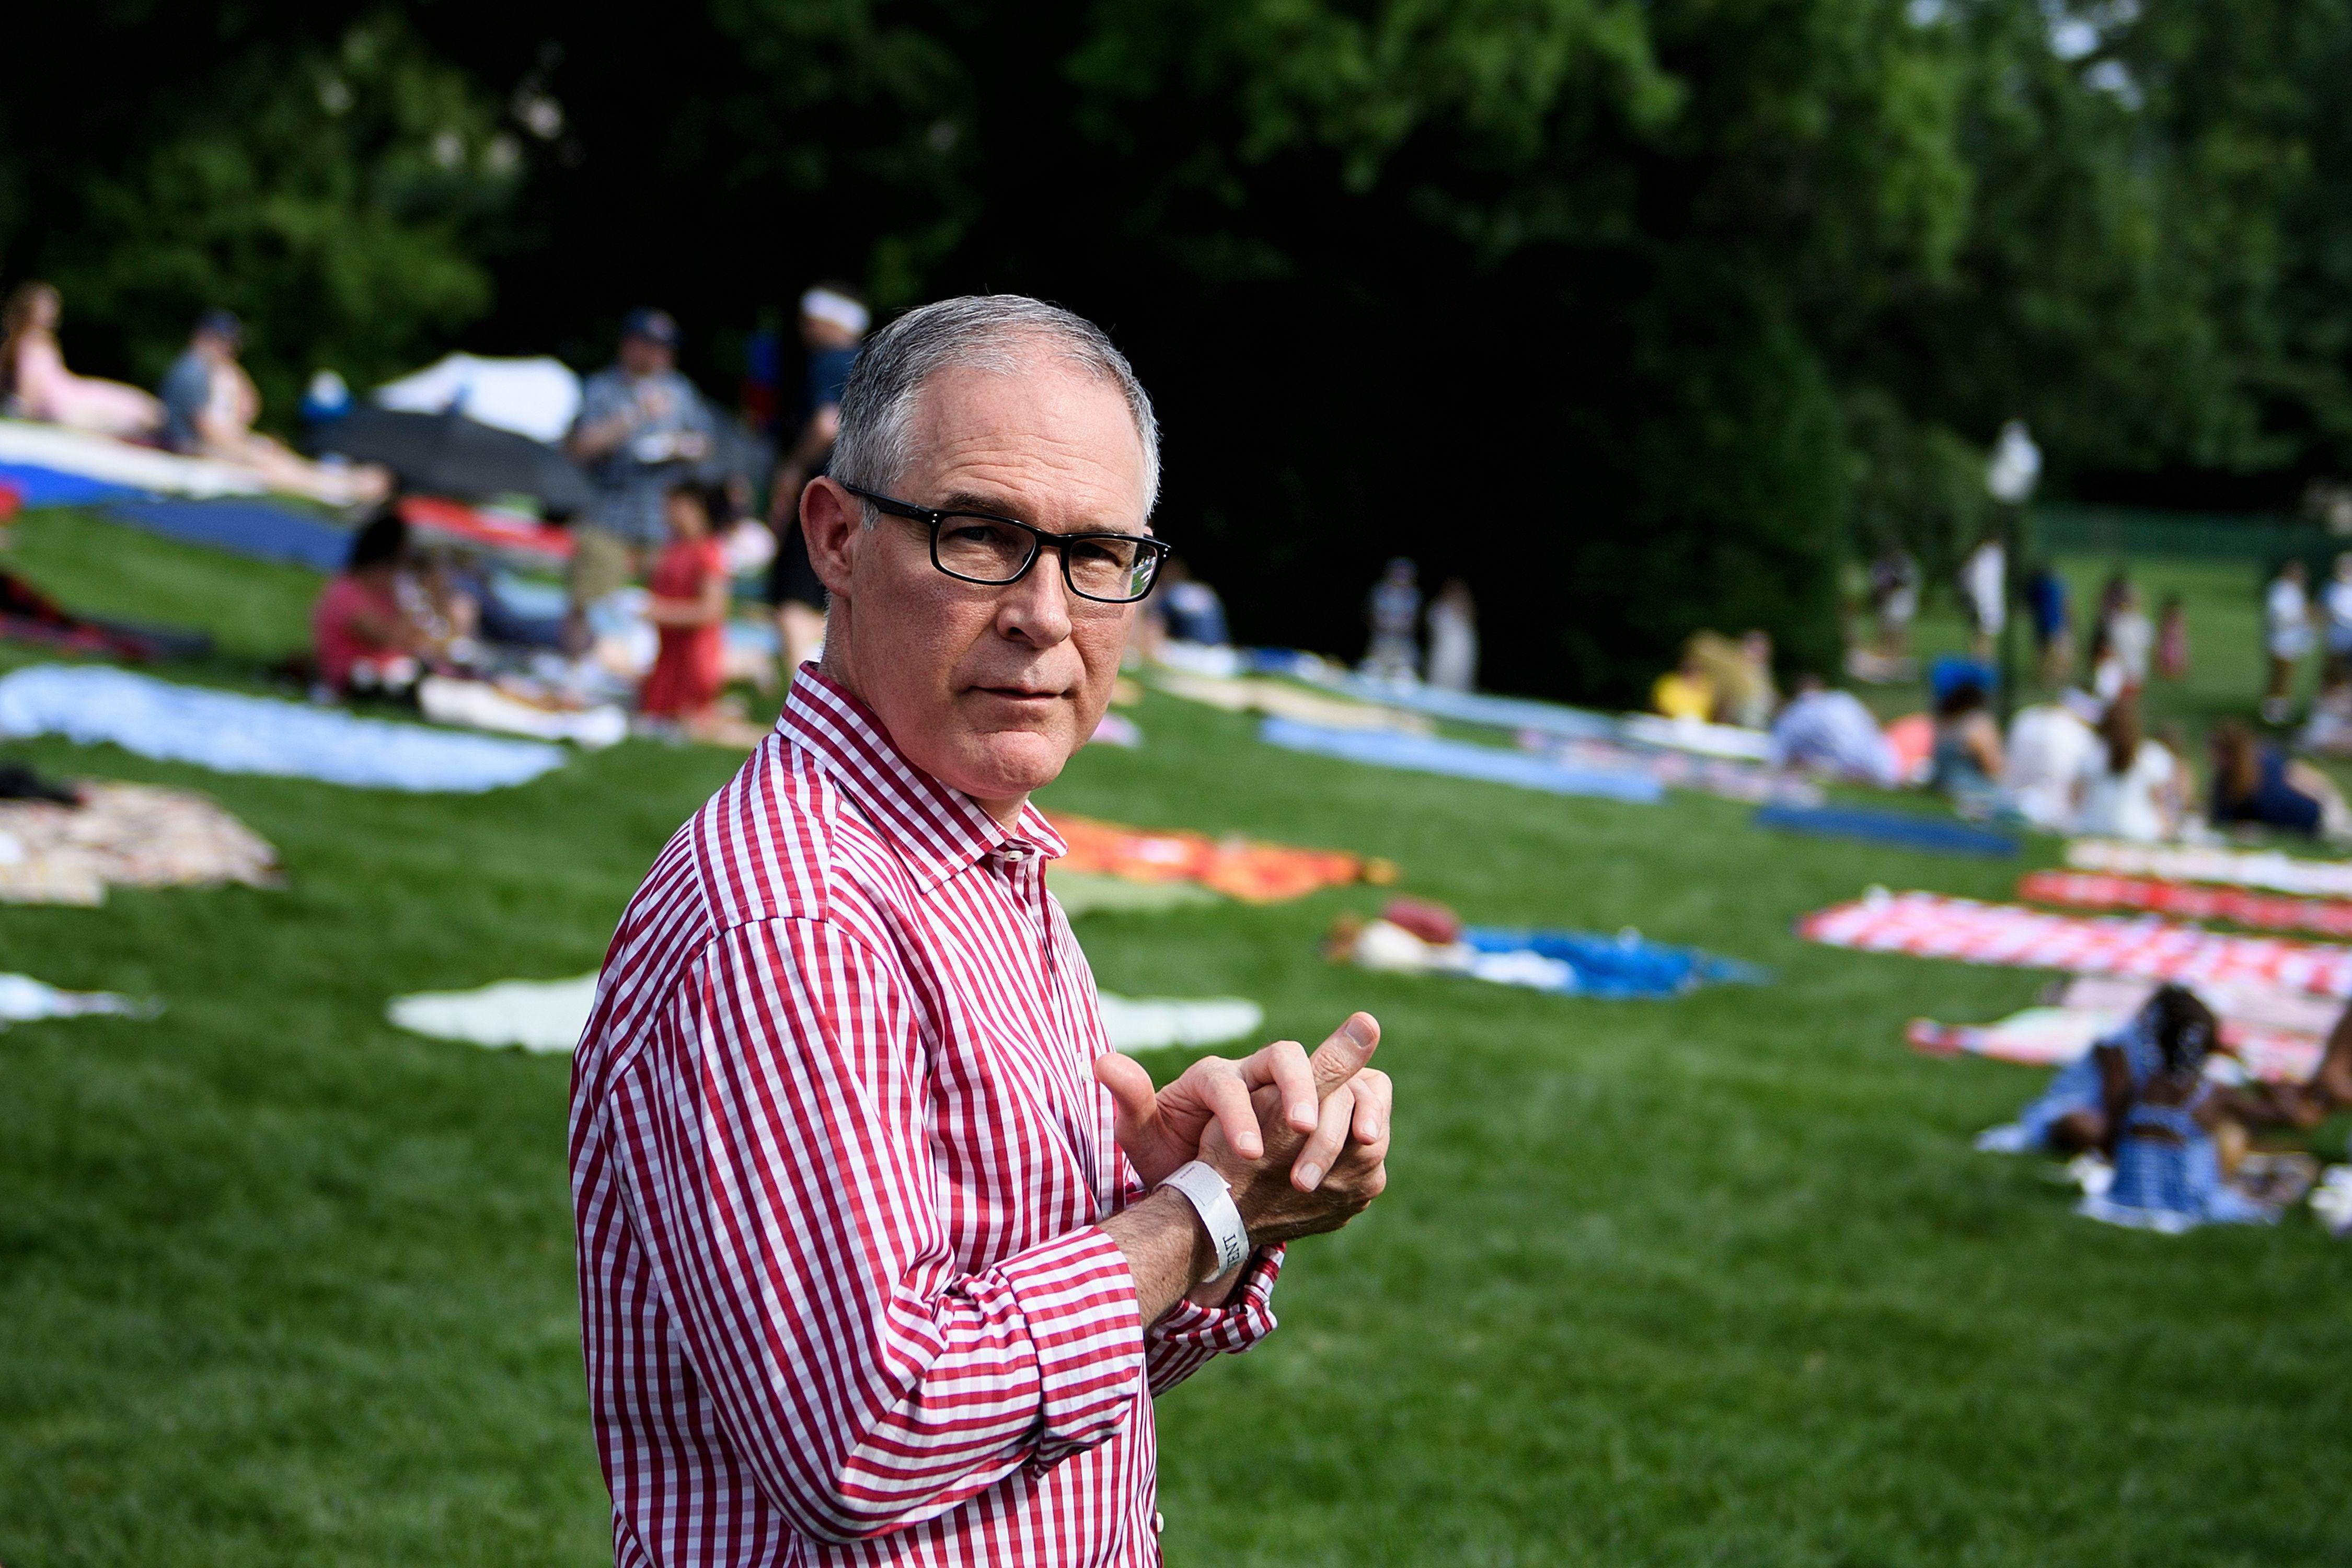 Scott Pruitt walks during a picnic for military families on the South Lawn of the White House July 4, 2018 in Washington, DC.